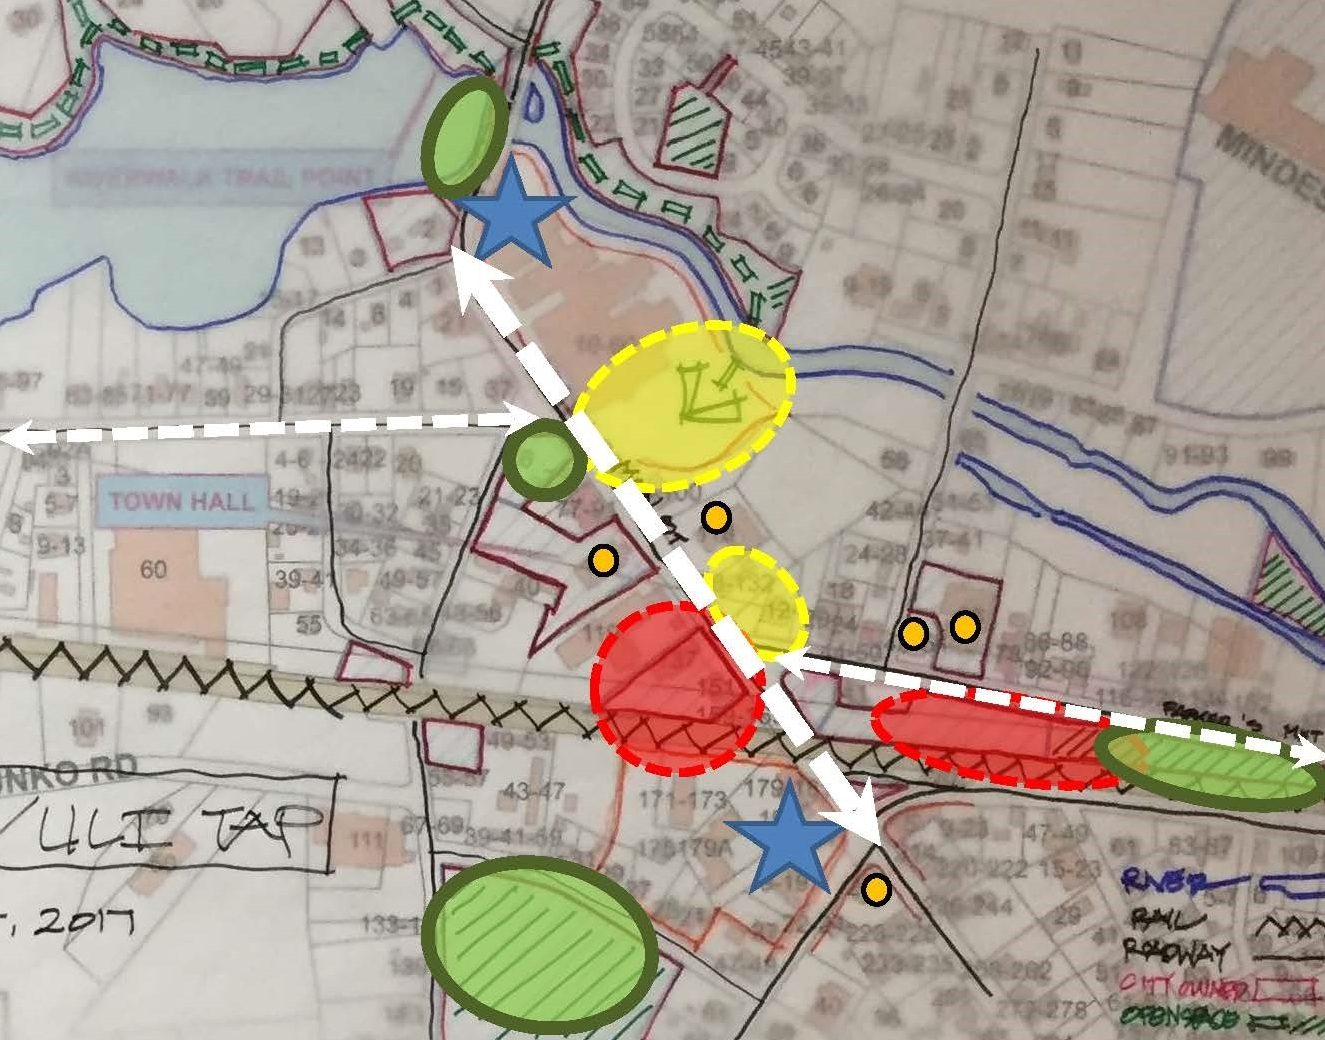 Sketch Diagram of Key Opportunities from TAP Charrette